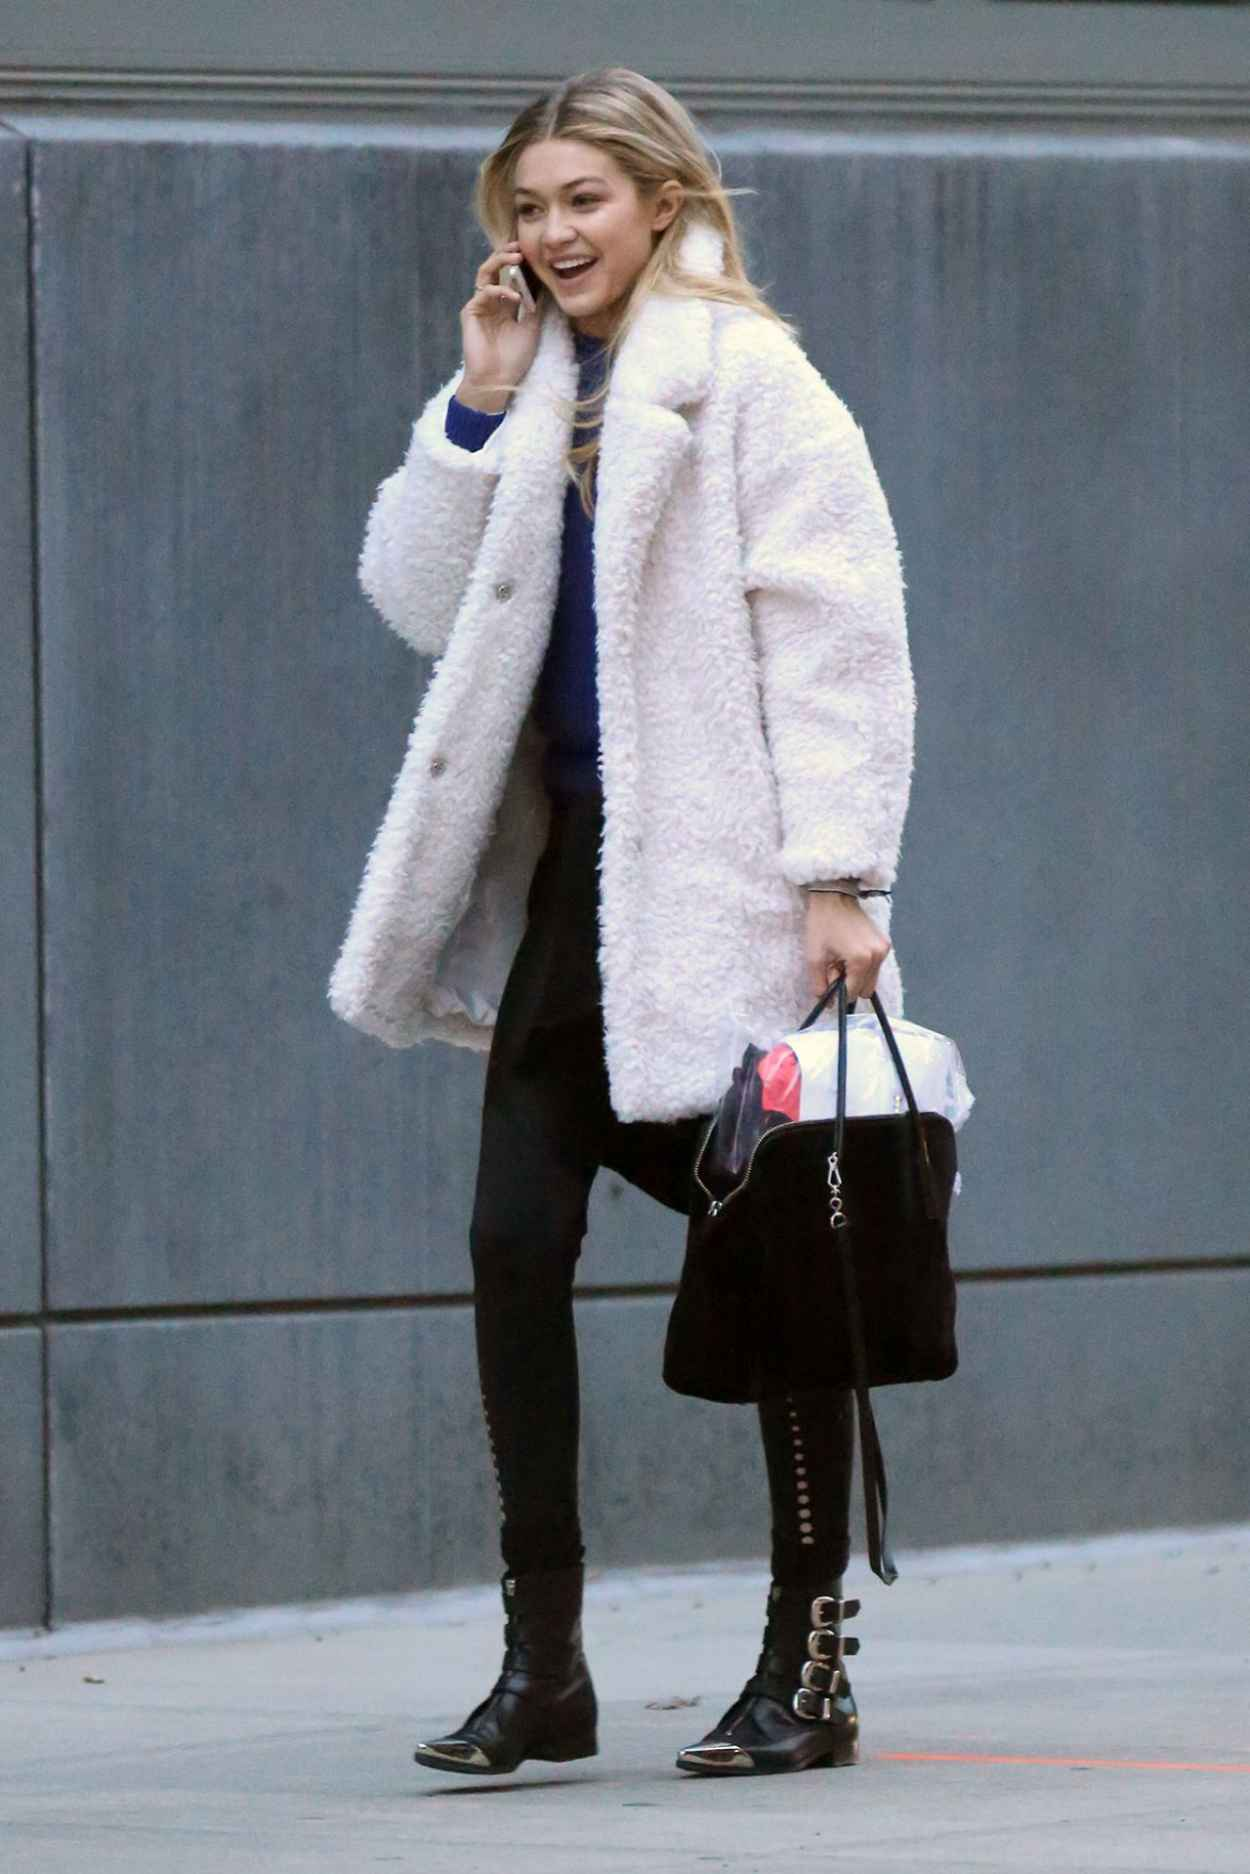 Gigi Hadid Street Style Arrives At Tribeca Photo Studio December 2015